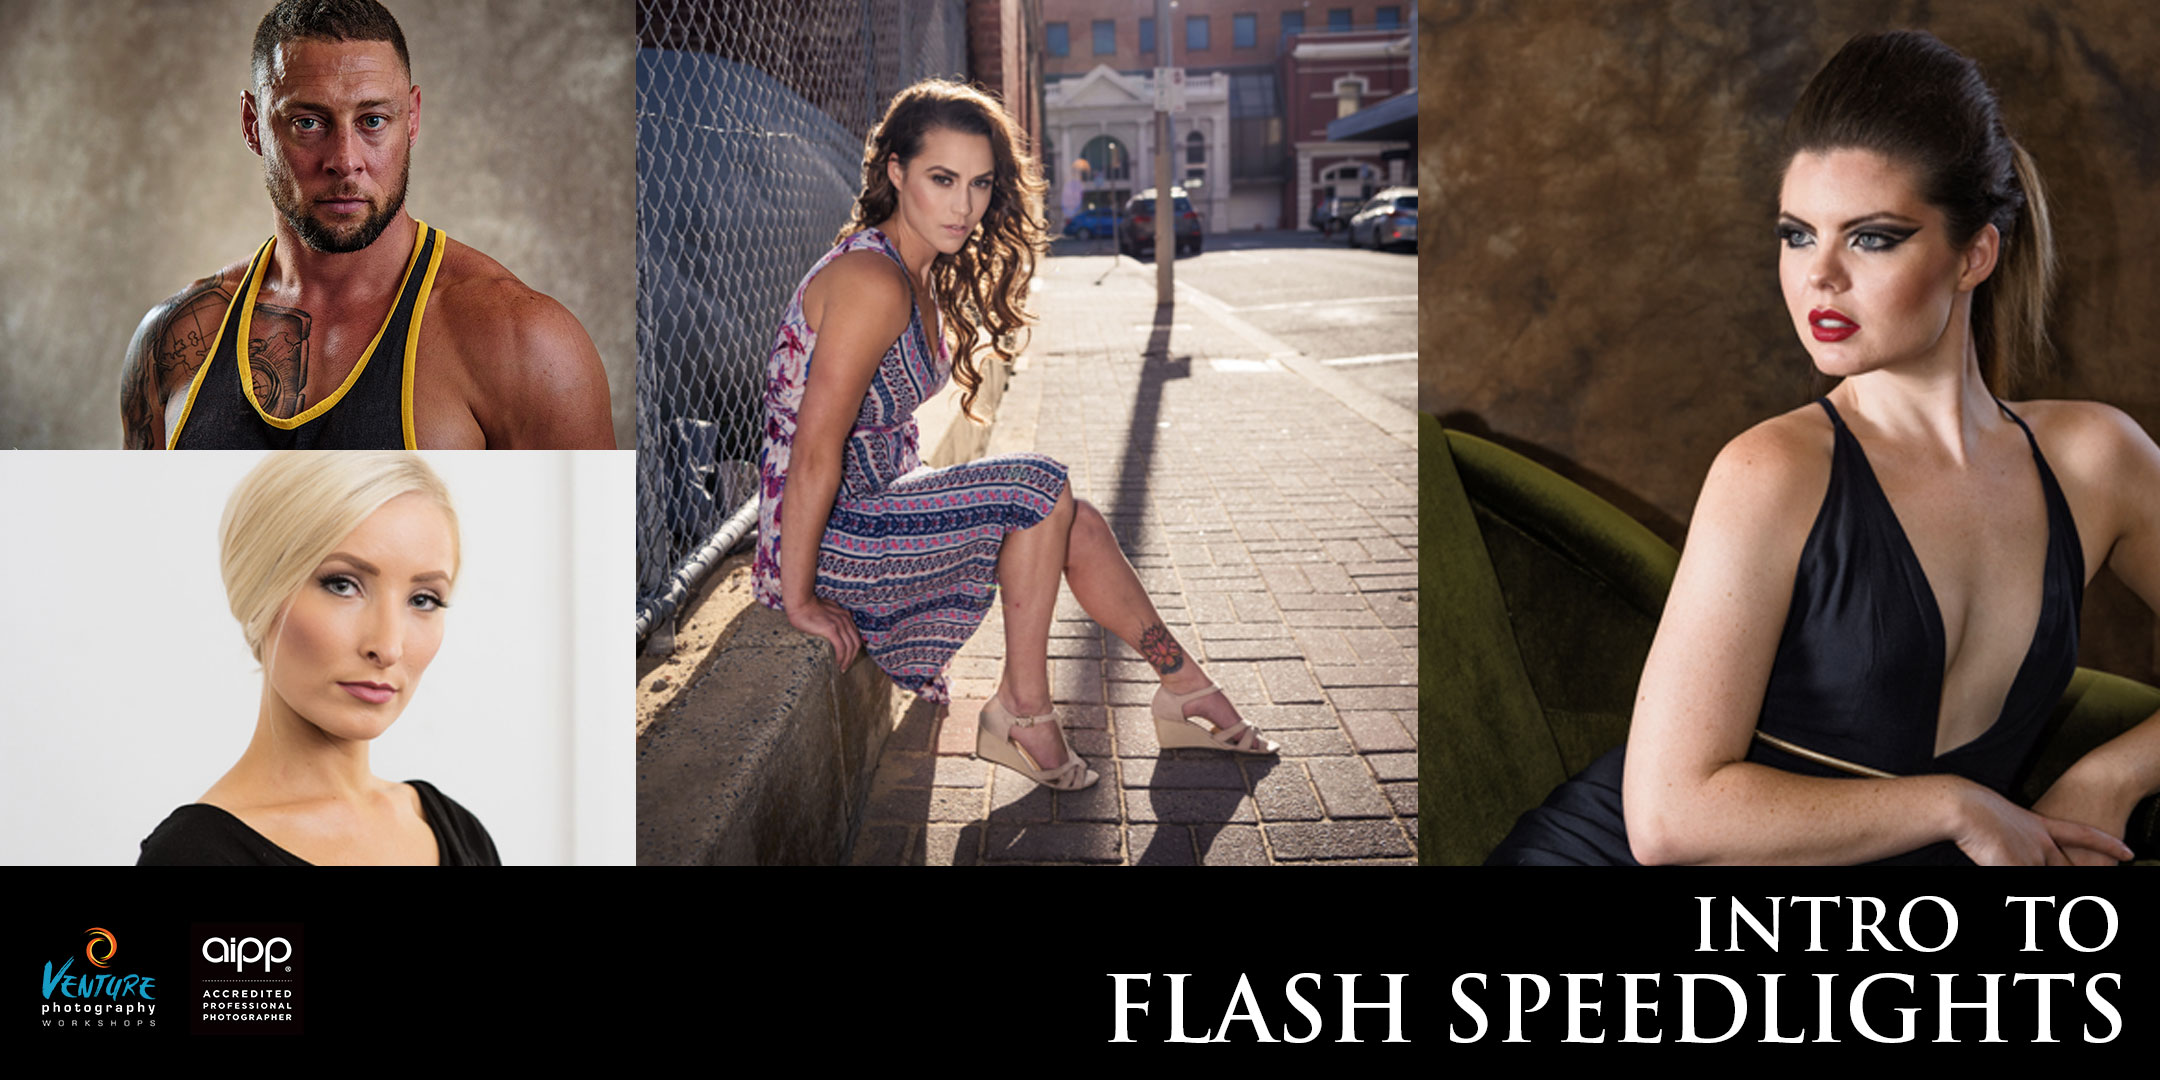 Intro to Flash Speedlights